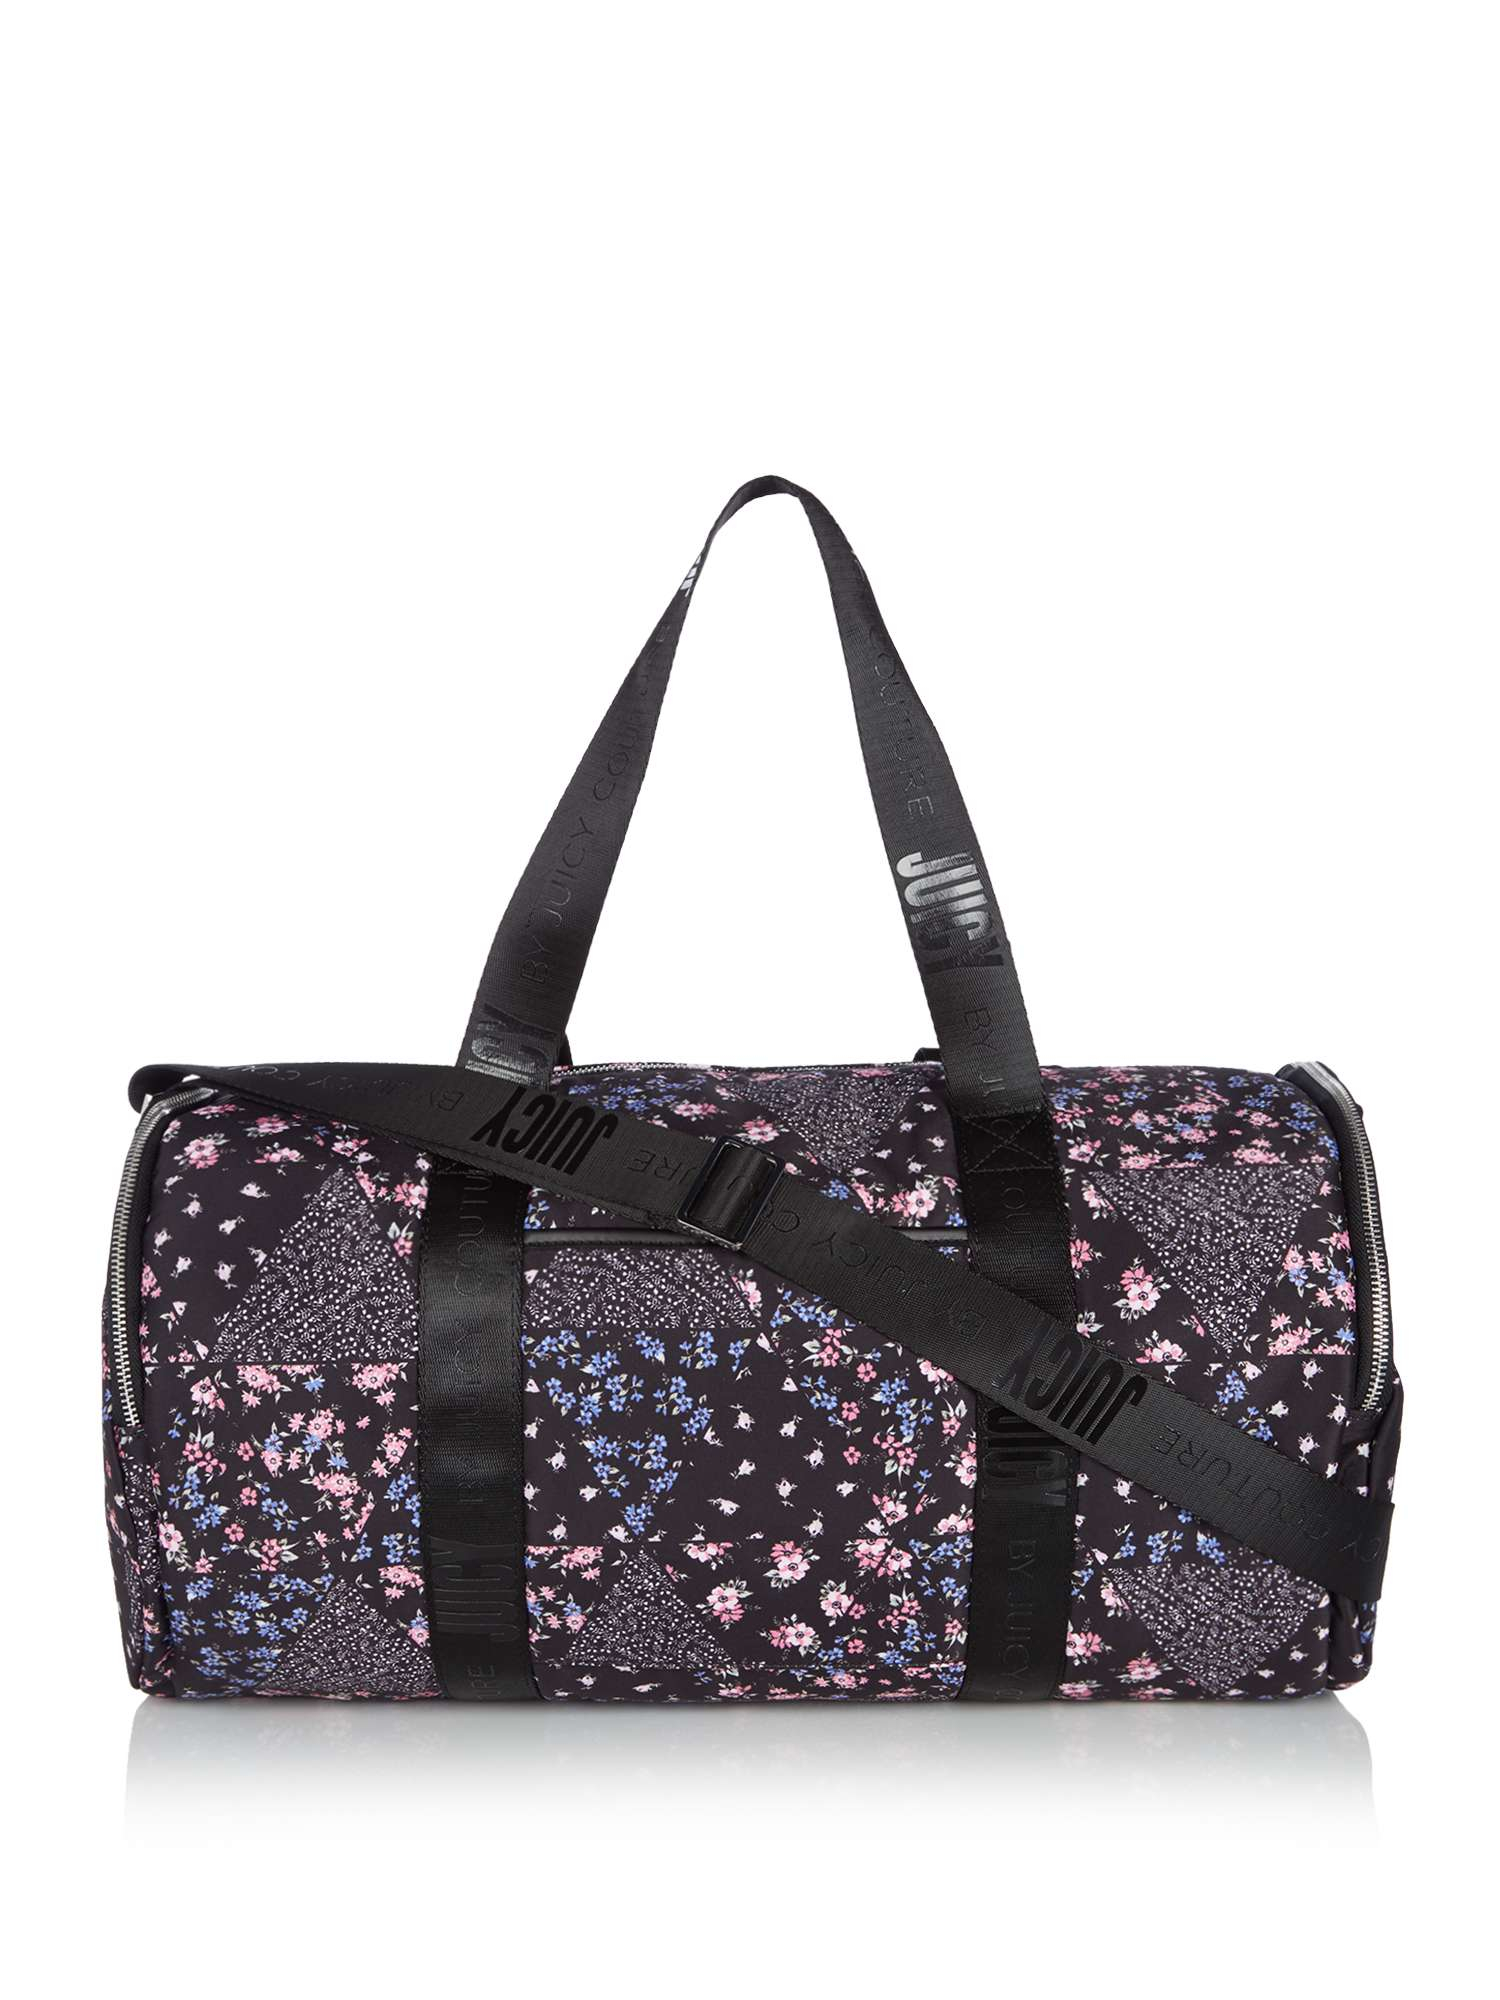 Juicy By Couture Sunset Barrel Gym Bag